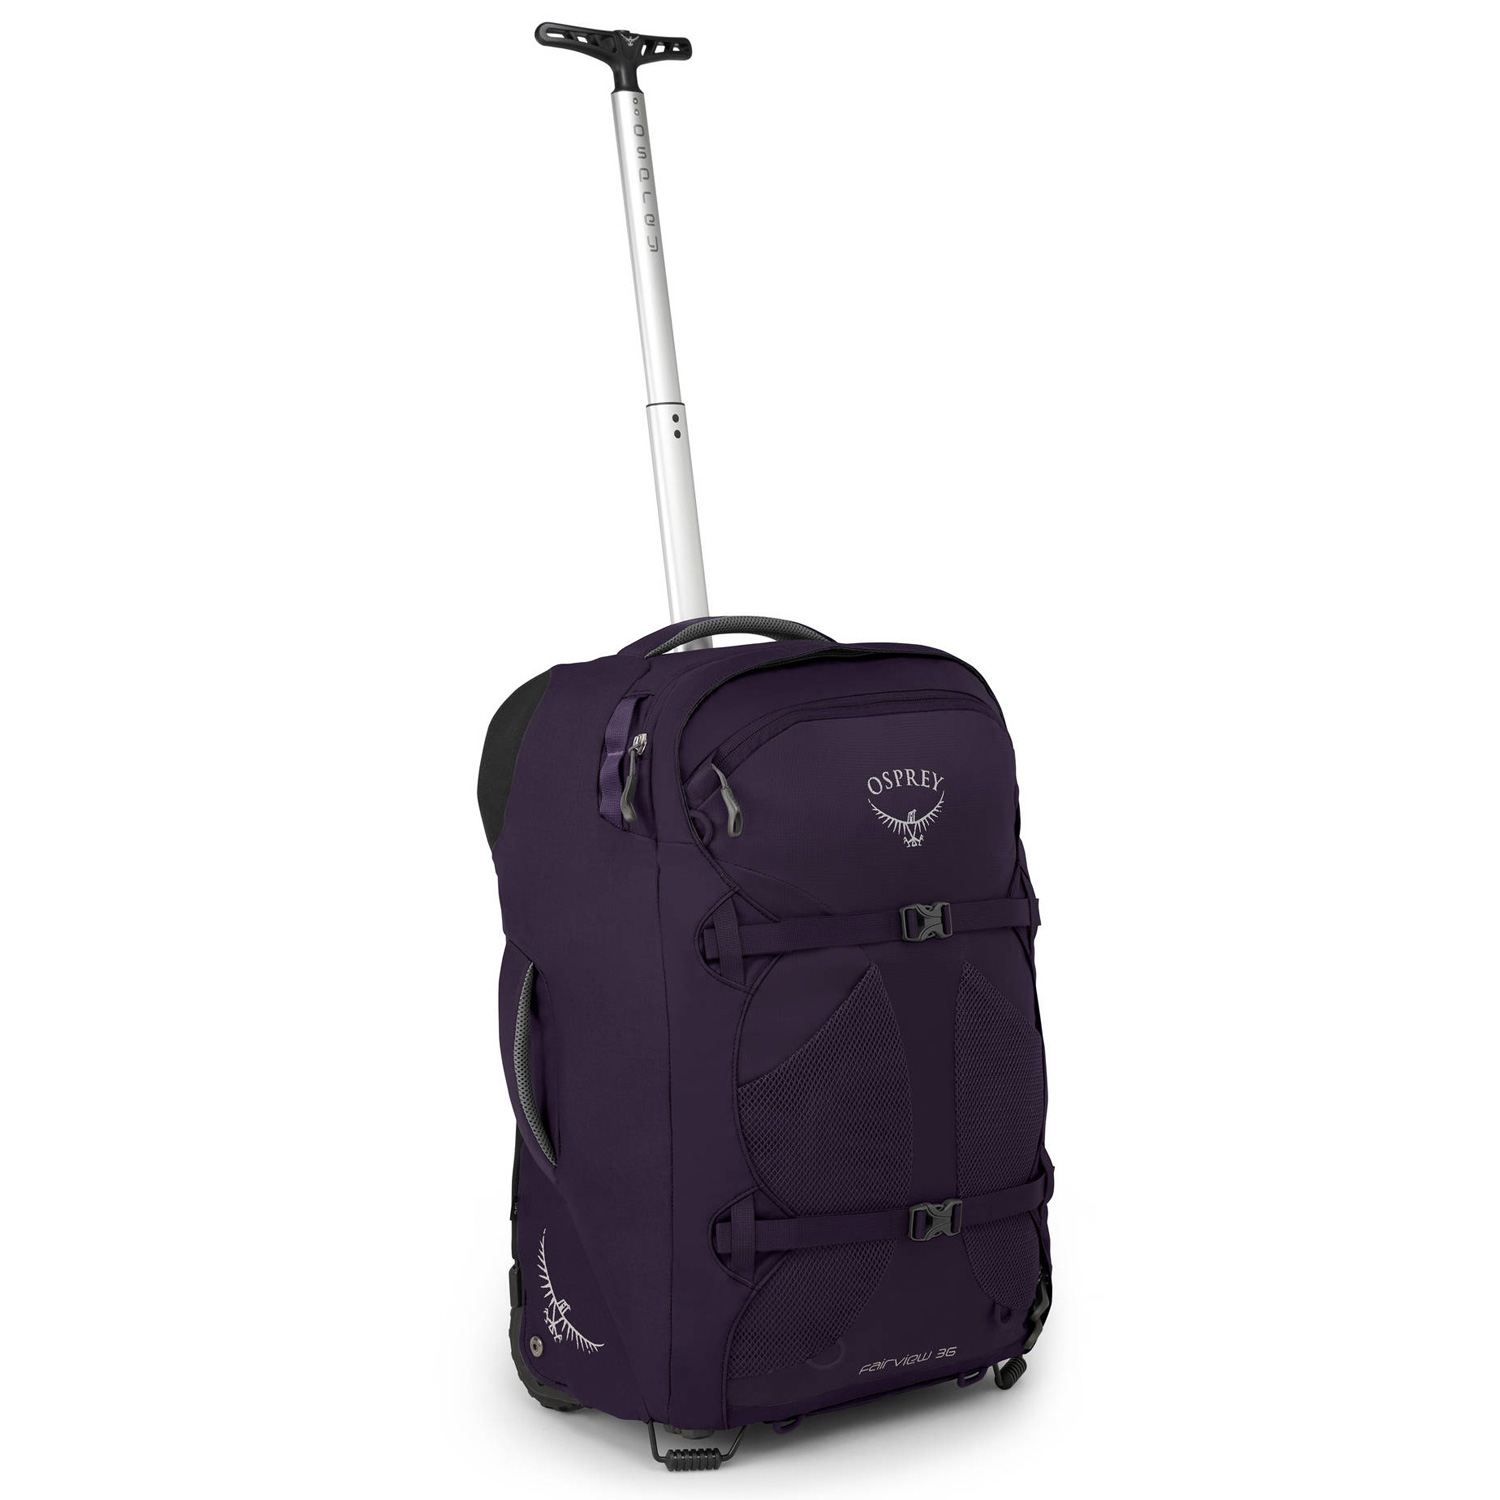 Picture of Osprey Fairview Wheels 36 - Women's Travel Bag - Amulet Purple